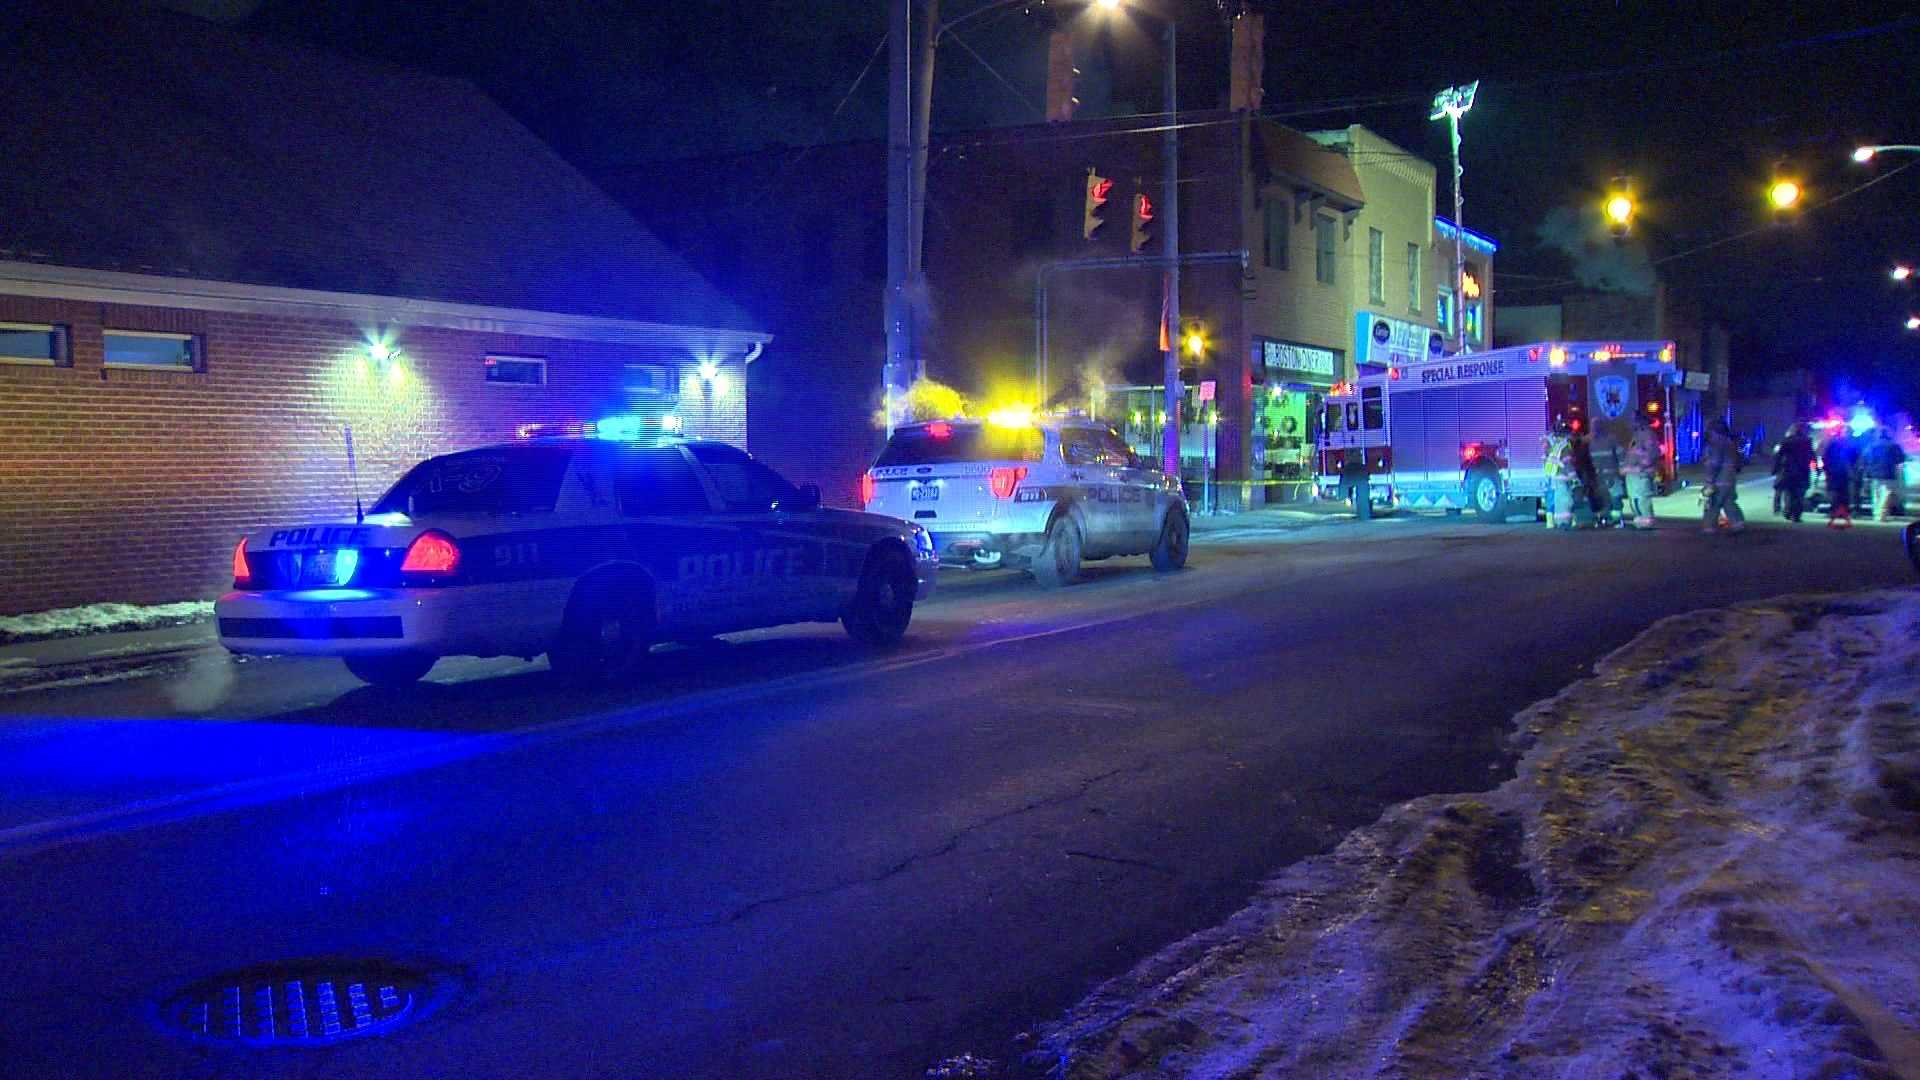 A person was injured after a hit-and-run accident in Clairton late Friday night.